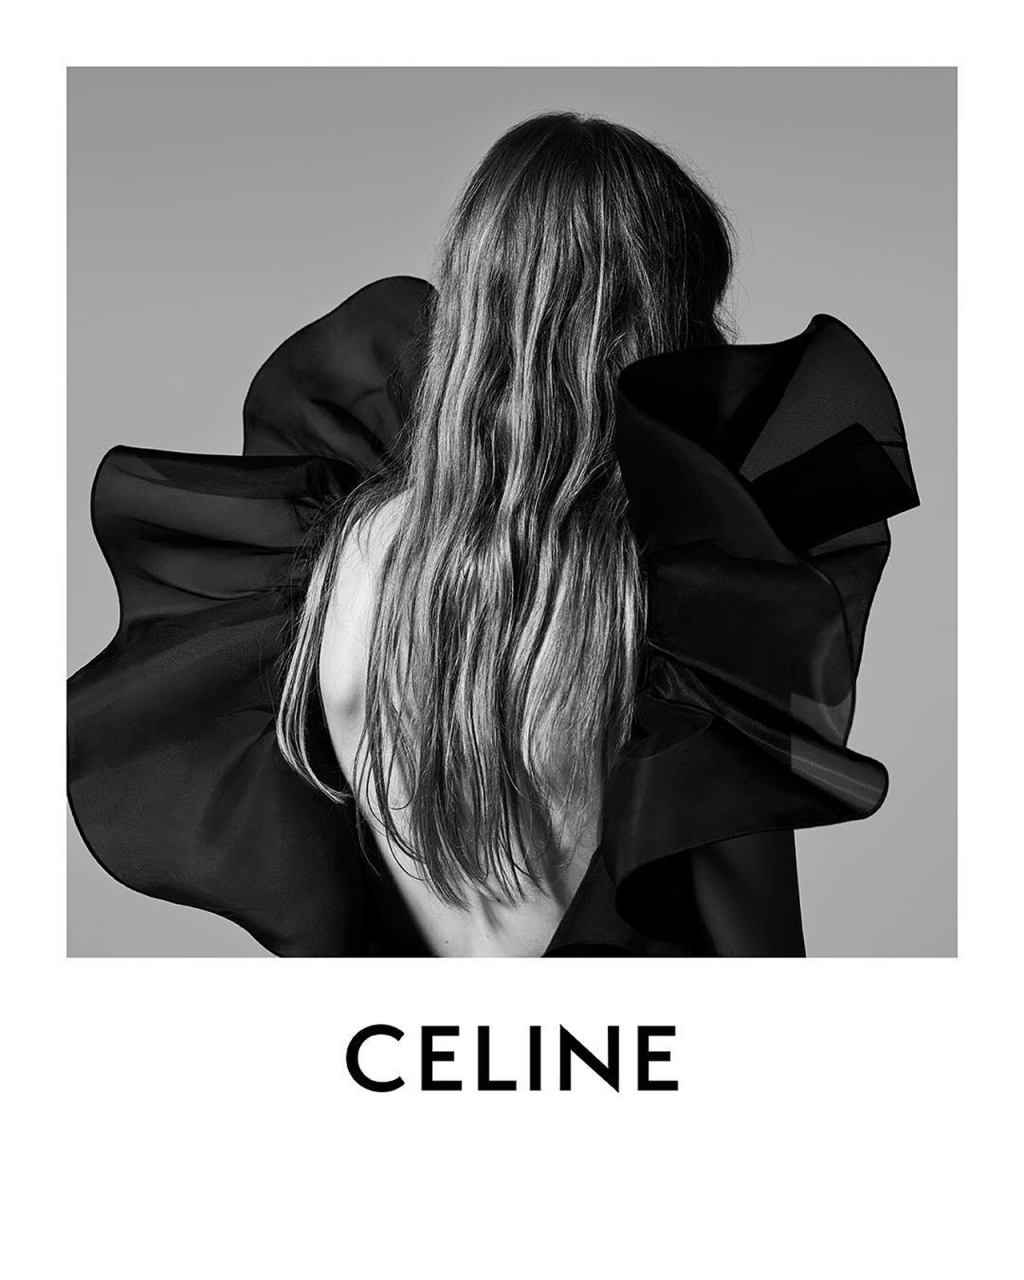 4a8ab8c3281b From the new CELINE BY HEDI SLIMANE collection. Via Instagram  celine